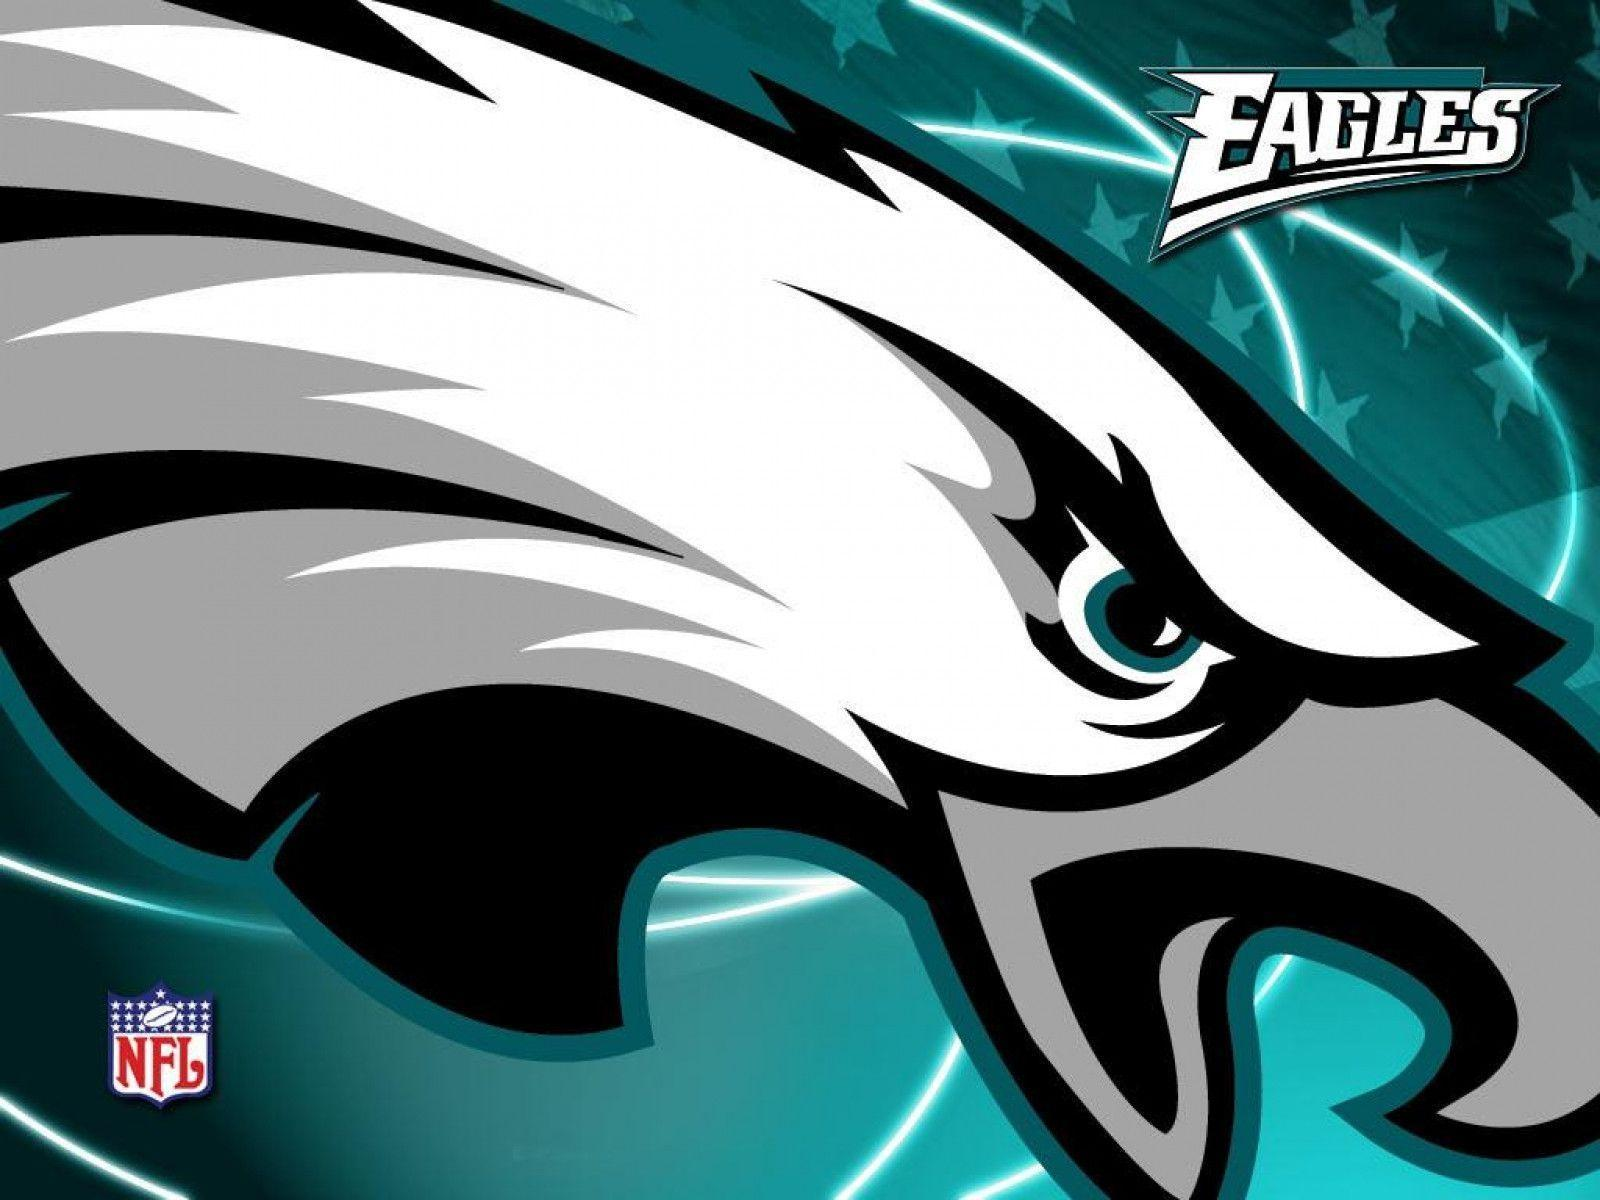 wallpaper eagles logo - photo #20